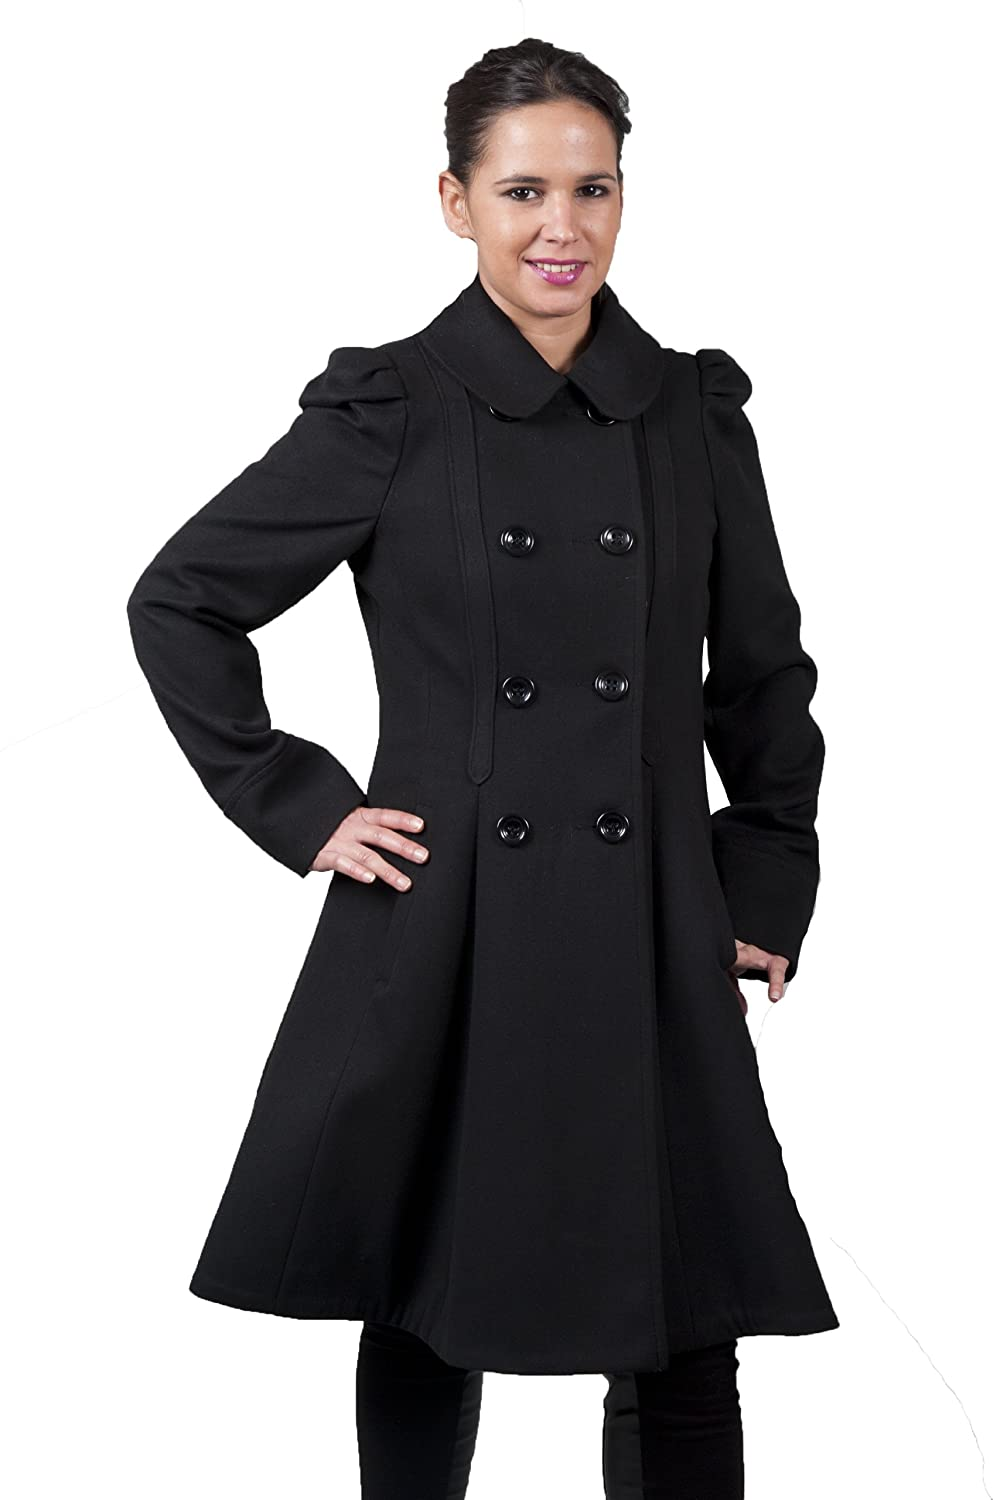 Images of Black Wool Coat Womens - Watch Out, There's a Clothes About